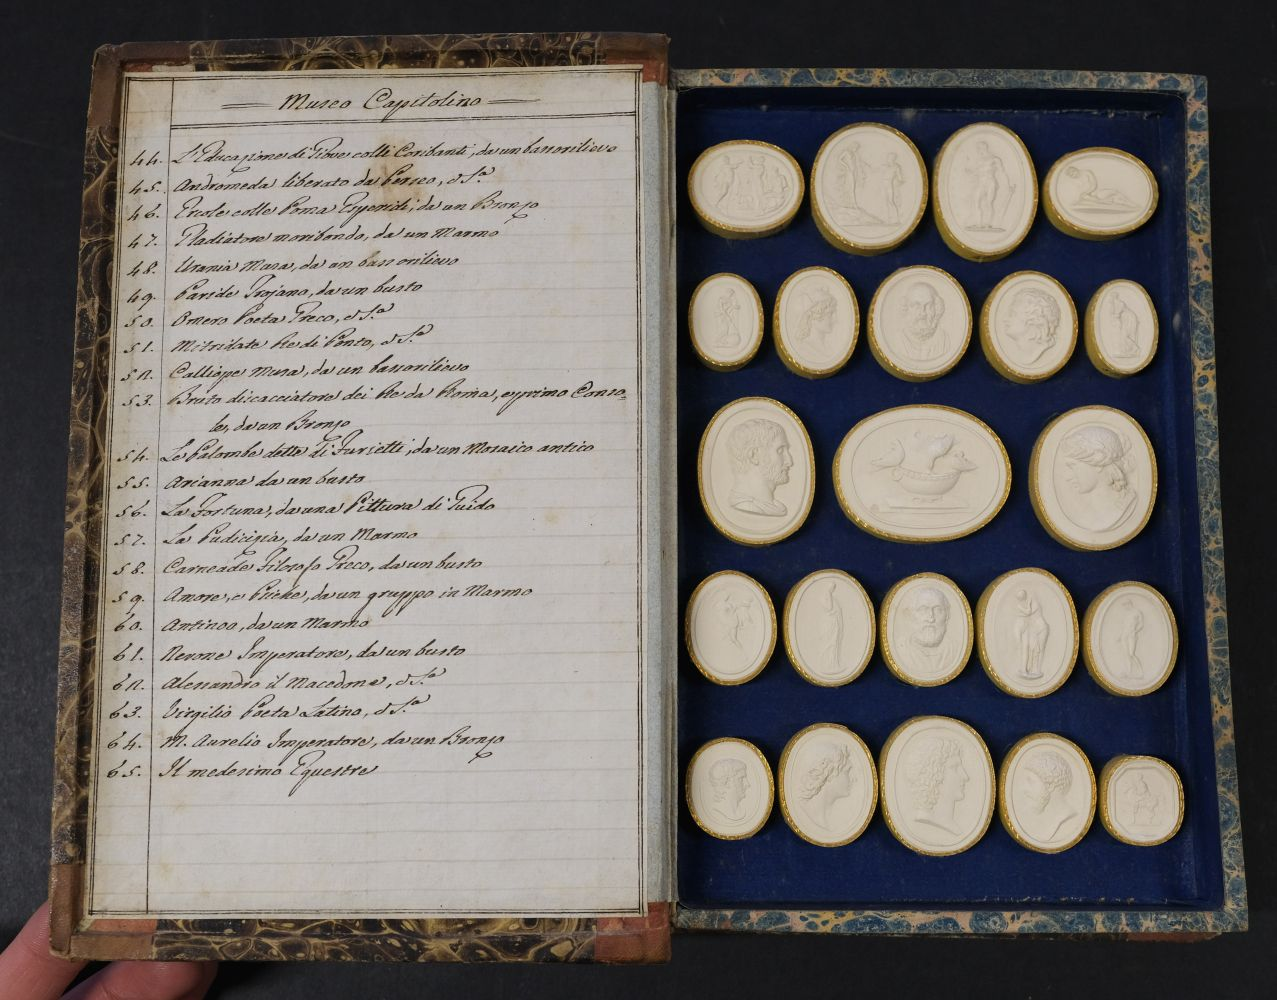 Paoletti (Bartolomeo and Pietro). A collection of 300 plaster cameos, 1820 - Image 13 of 16